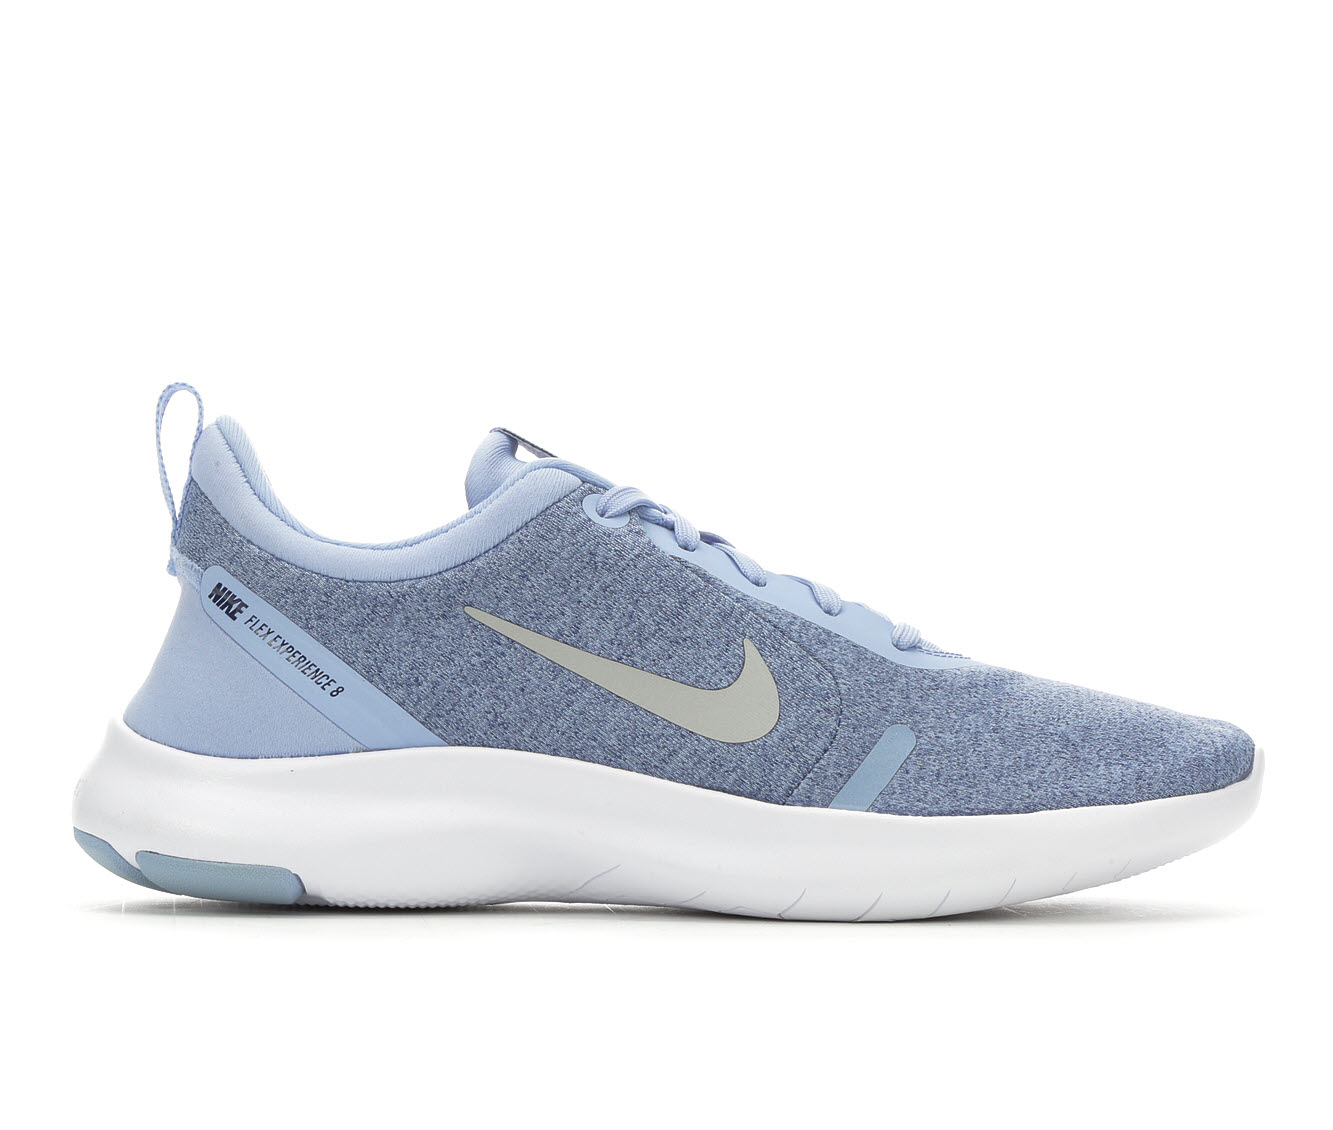 Nike Flex Experience Run 8 Women's Athletic Shoe (Blue)